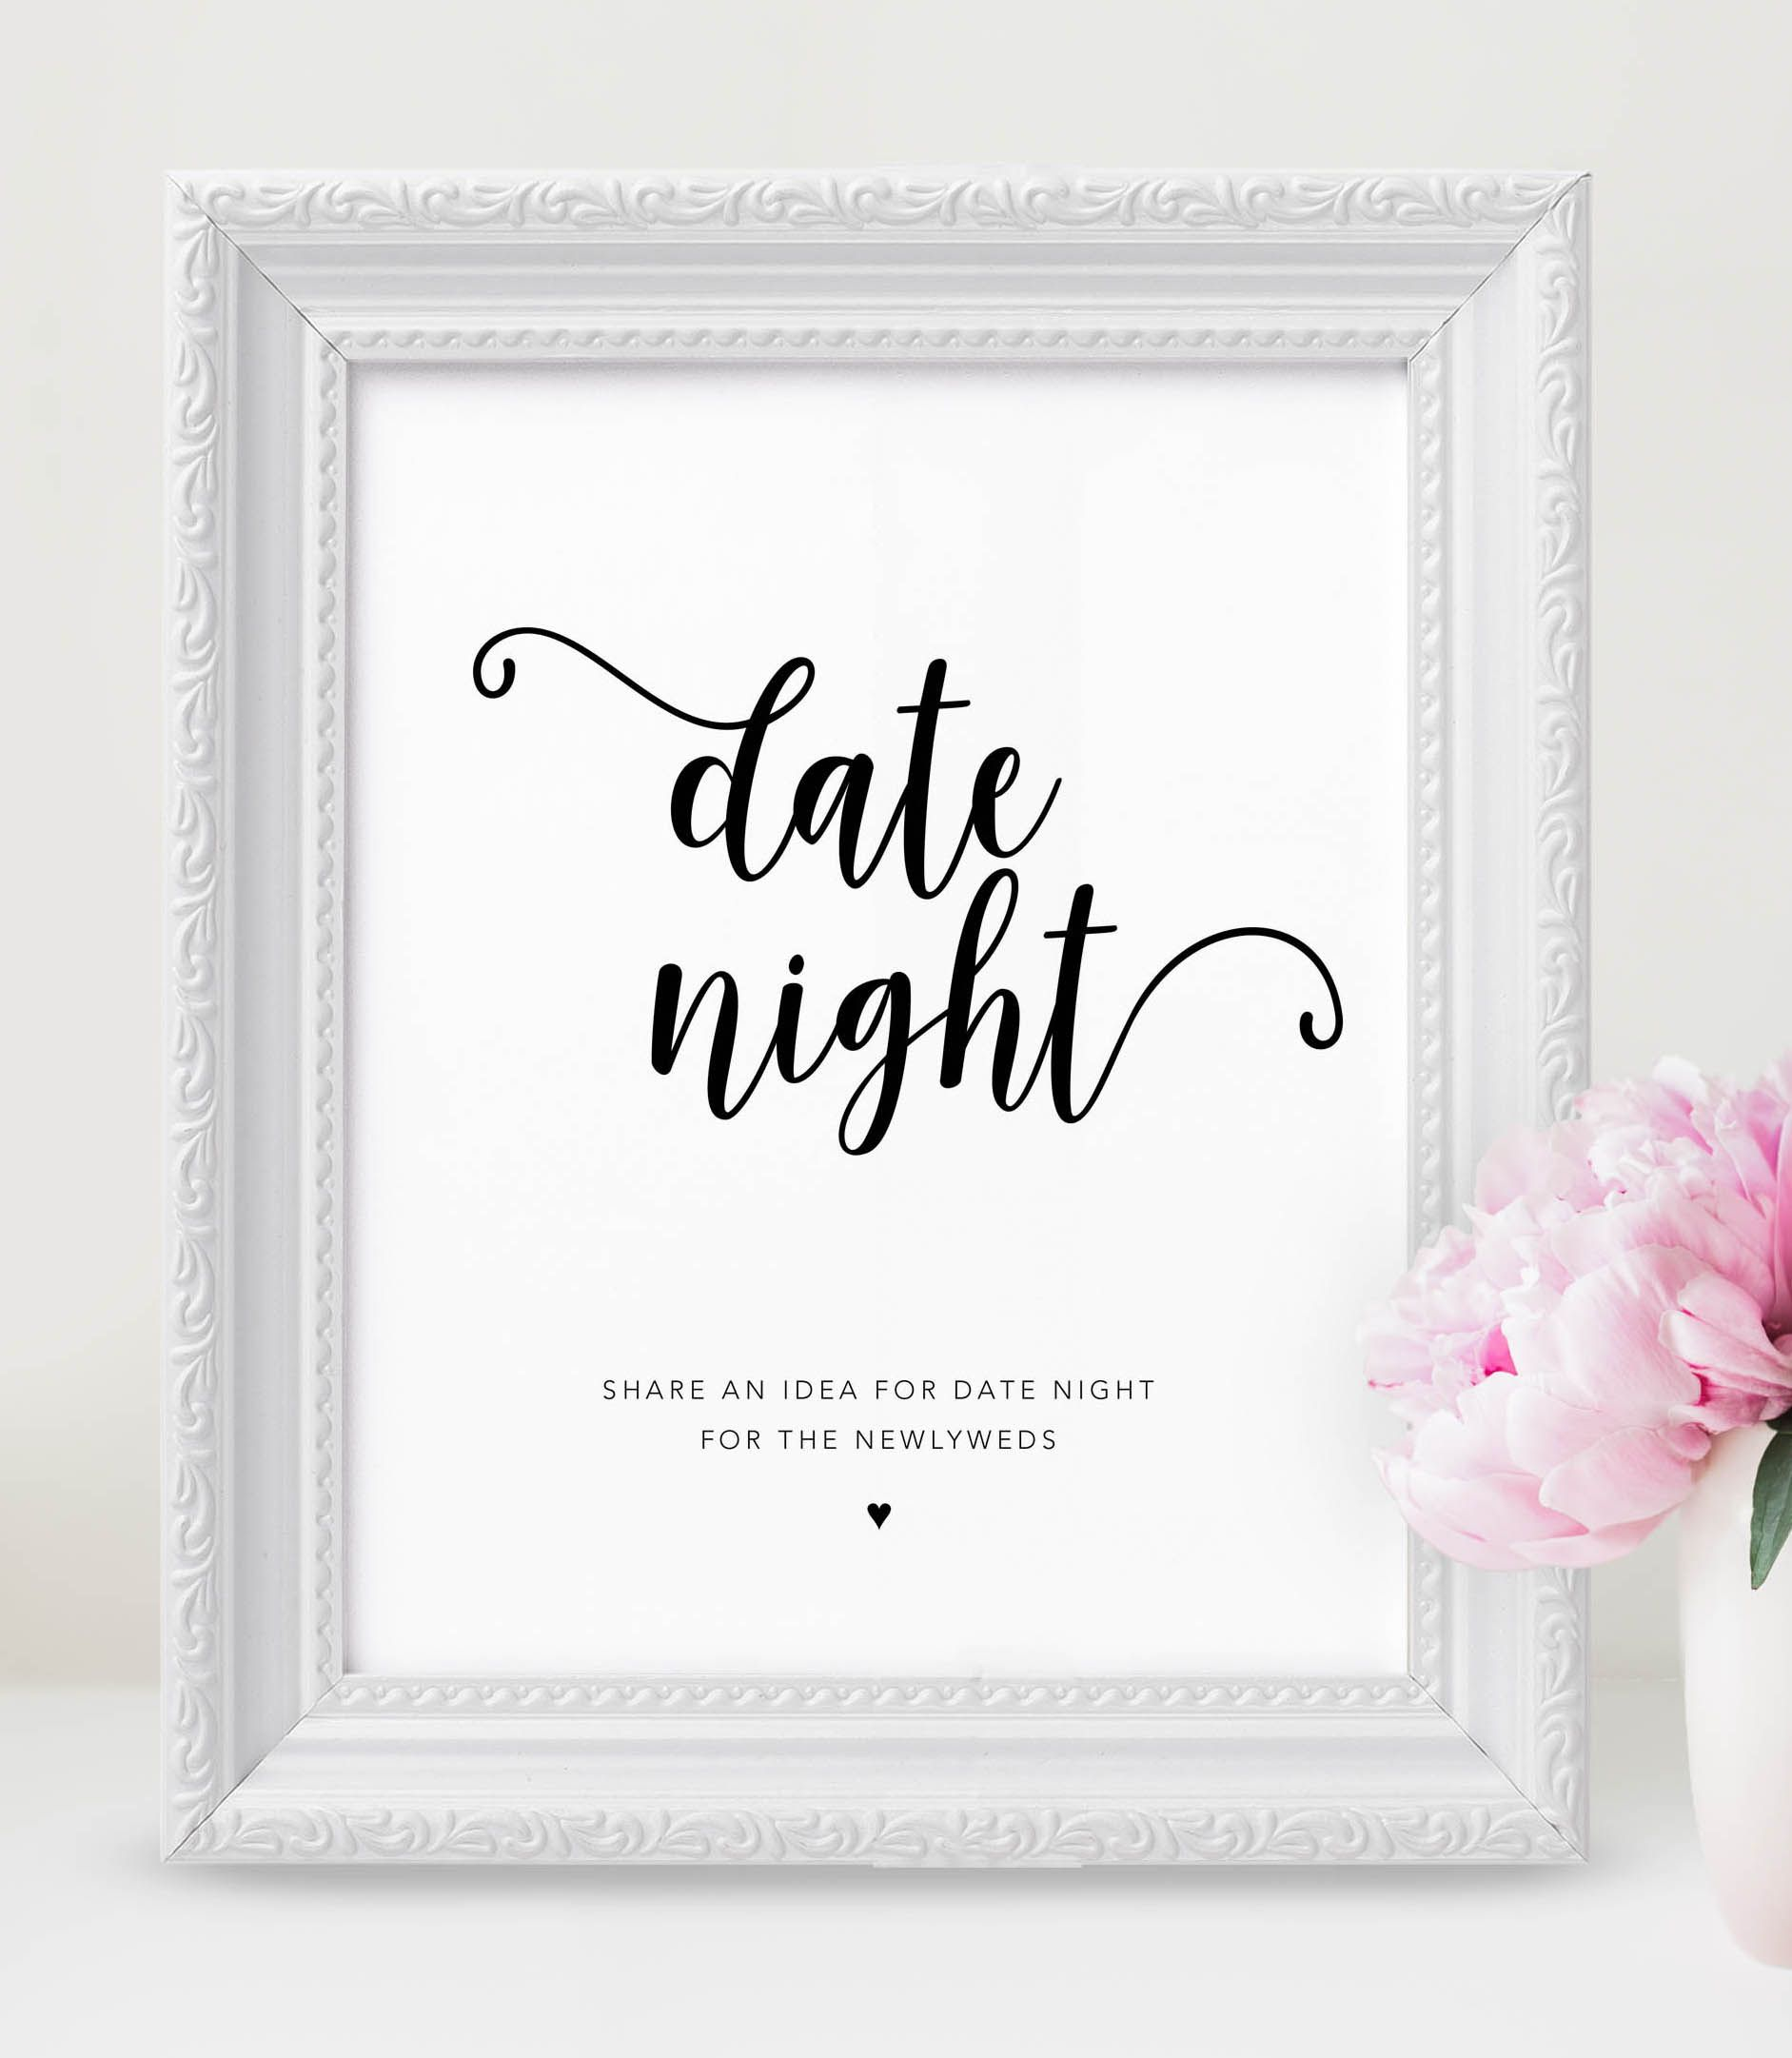 photo about Date Night Jar Printable identified as This day evening jar indication can be shown at your marriage ceremony